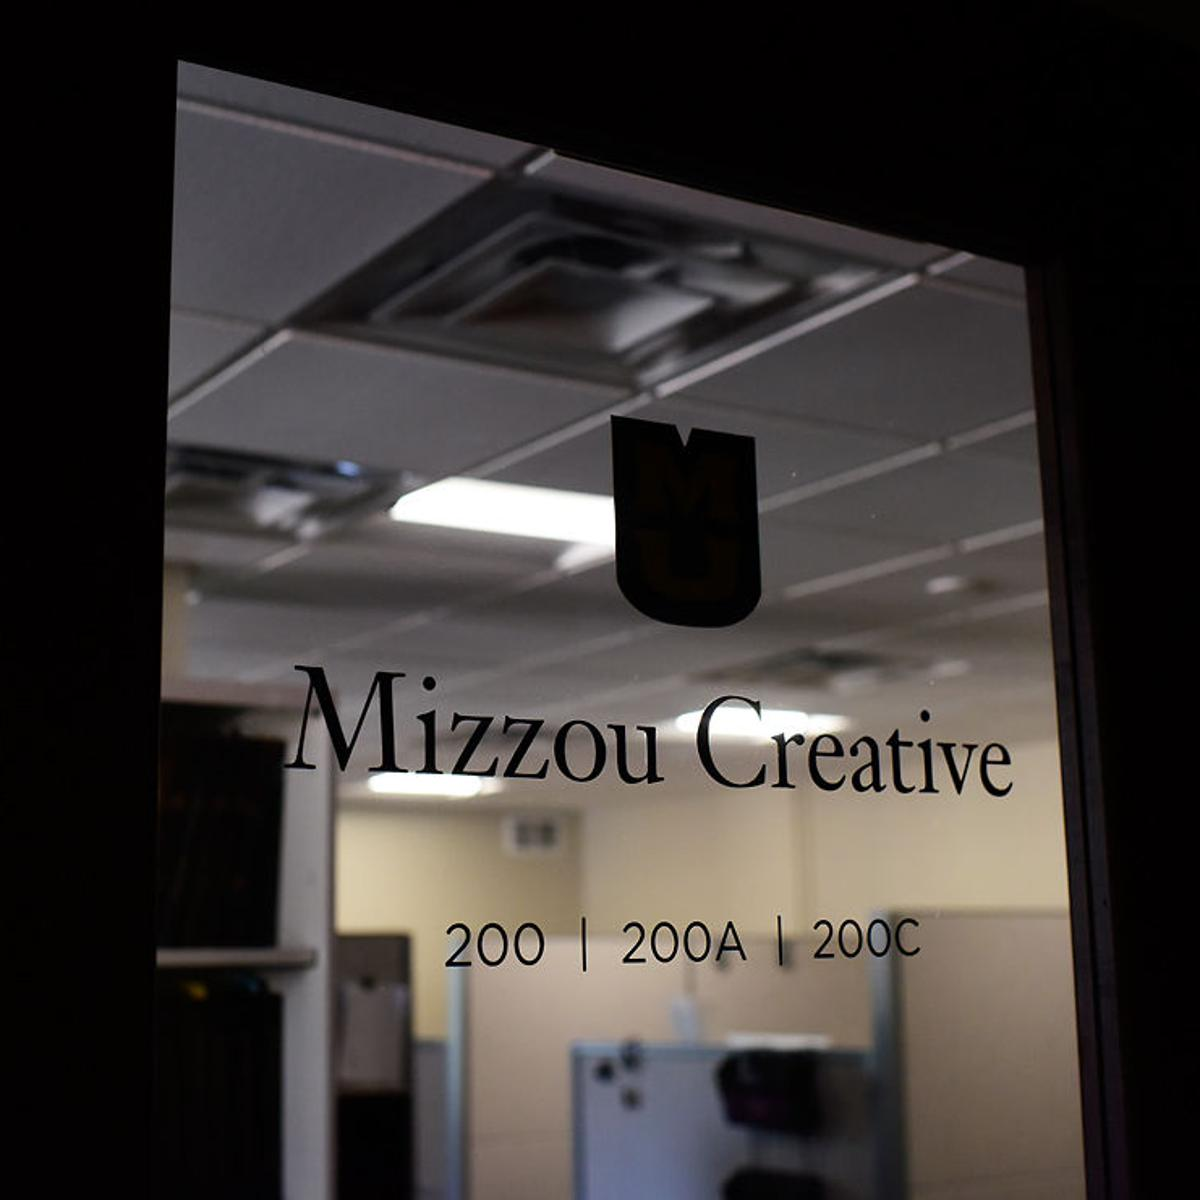 MU-UM BUDGET ROUNDUP: Laid-off IT workers locked out of HR